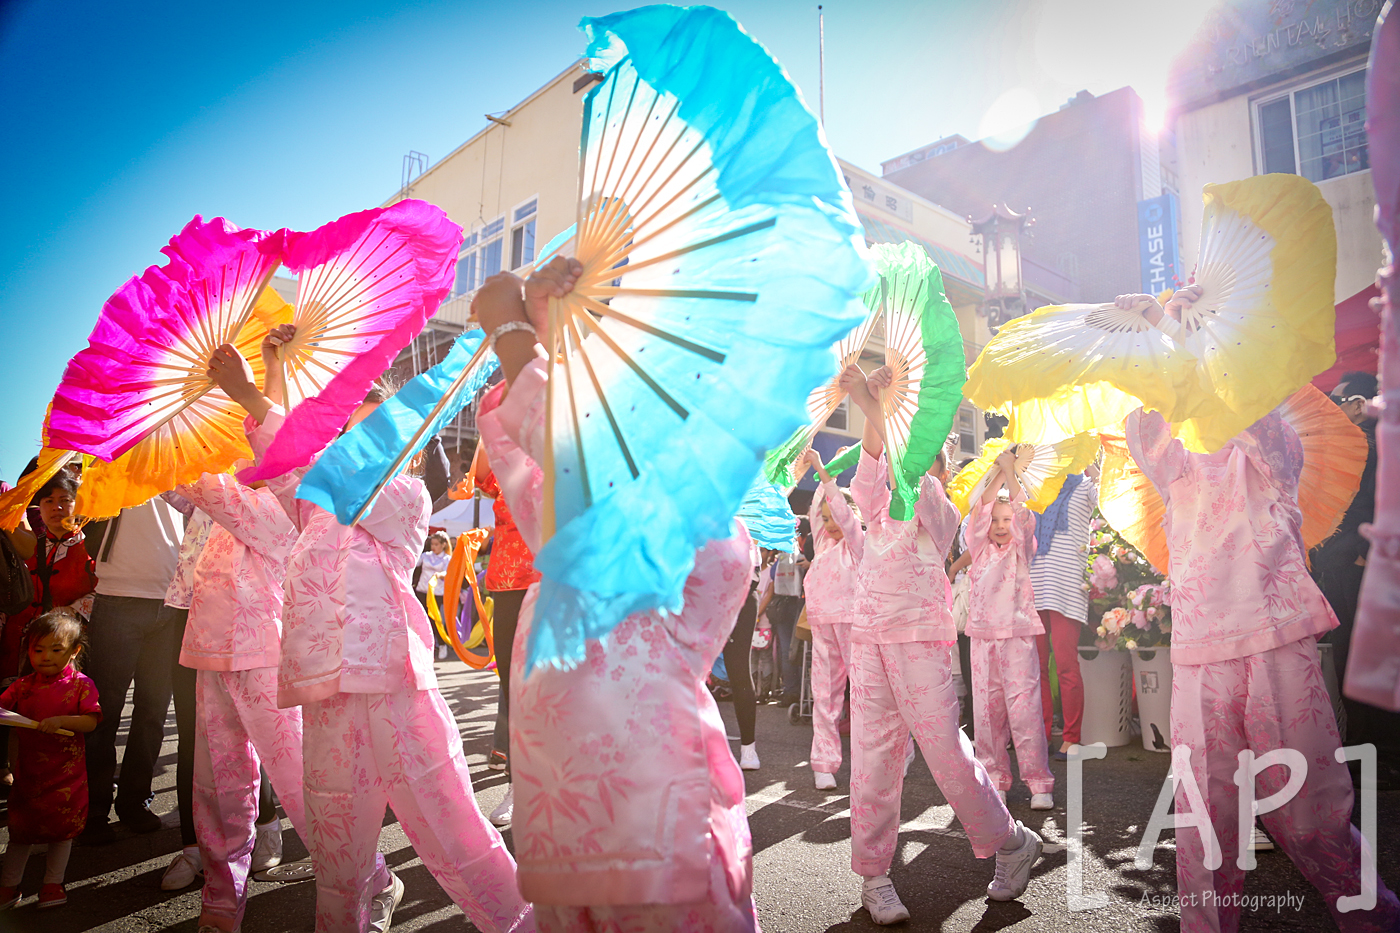 West Portal Elementary's Chinese Performing Arts Program @ Chinatown's LunarNew Year Mini Parade - 2/14/15